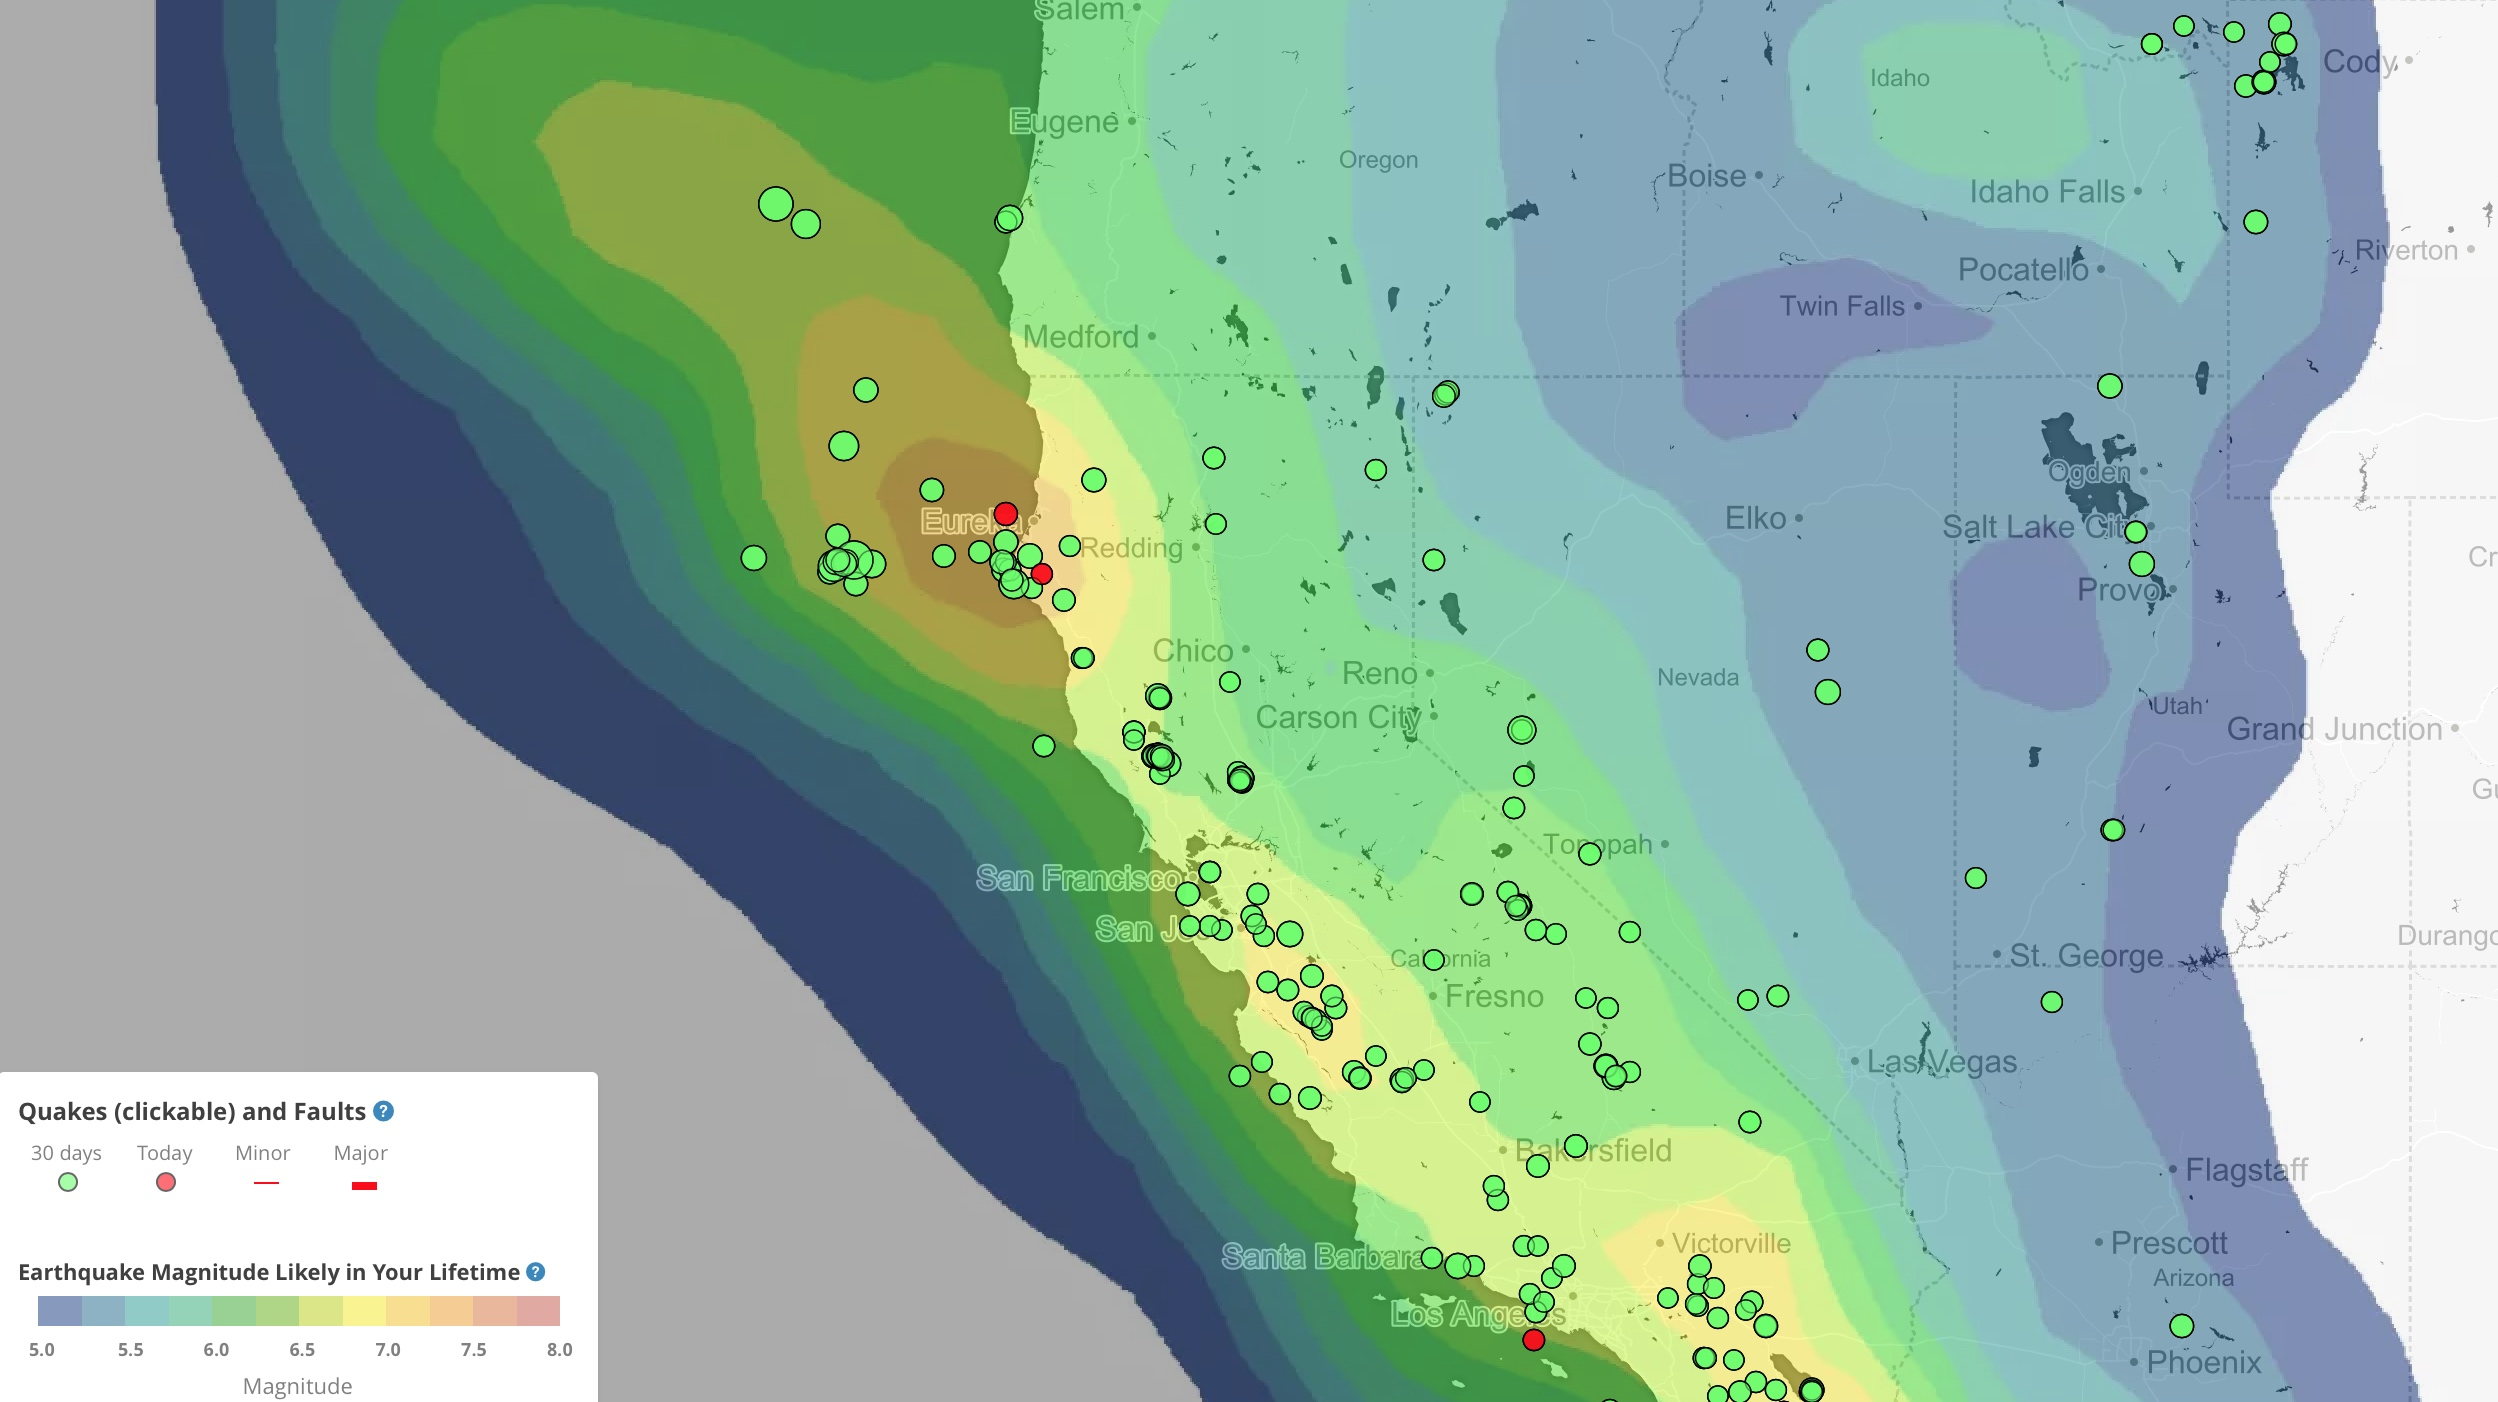 Temblor earthquake forecast map of northern California and surrounding regions. Note the high likelihood of large earthquakes at Cape Mendocino, the point at which the San Andreas makes a westward turn into the Pacific and becomes the Mendocino Fault Zone.